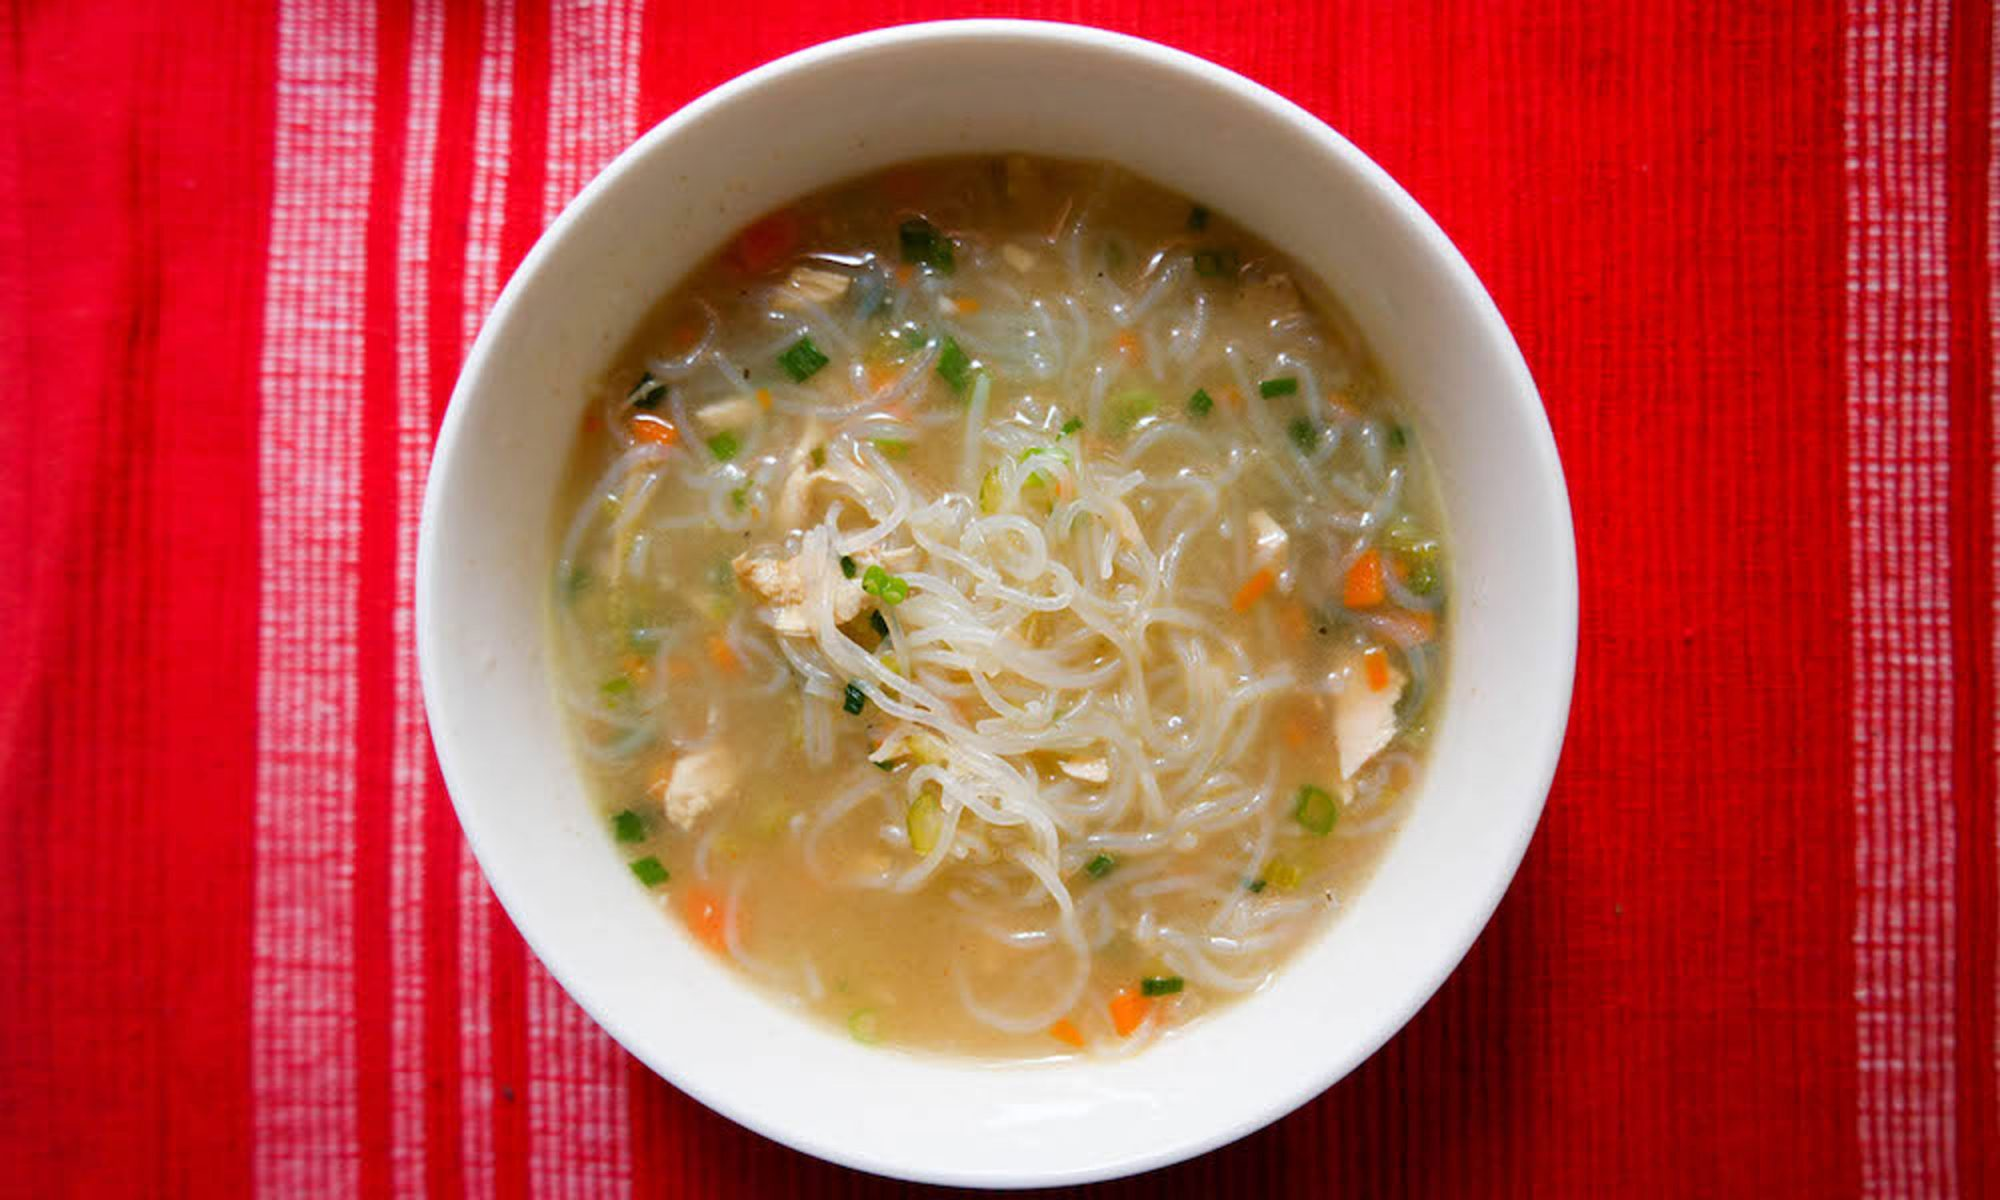 EC: Filipino Chicken Noodle Soup Is the Best Way to Kick Off the New Year